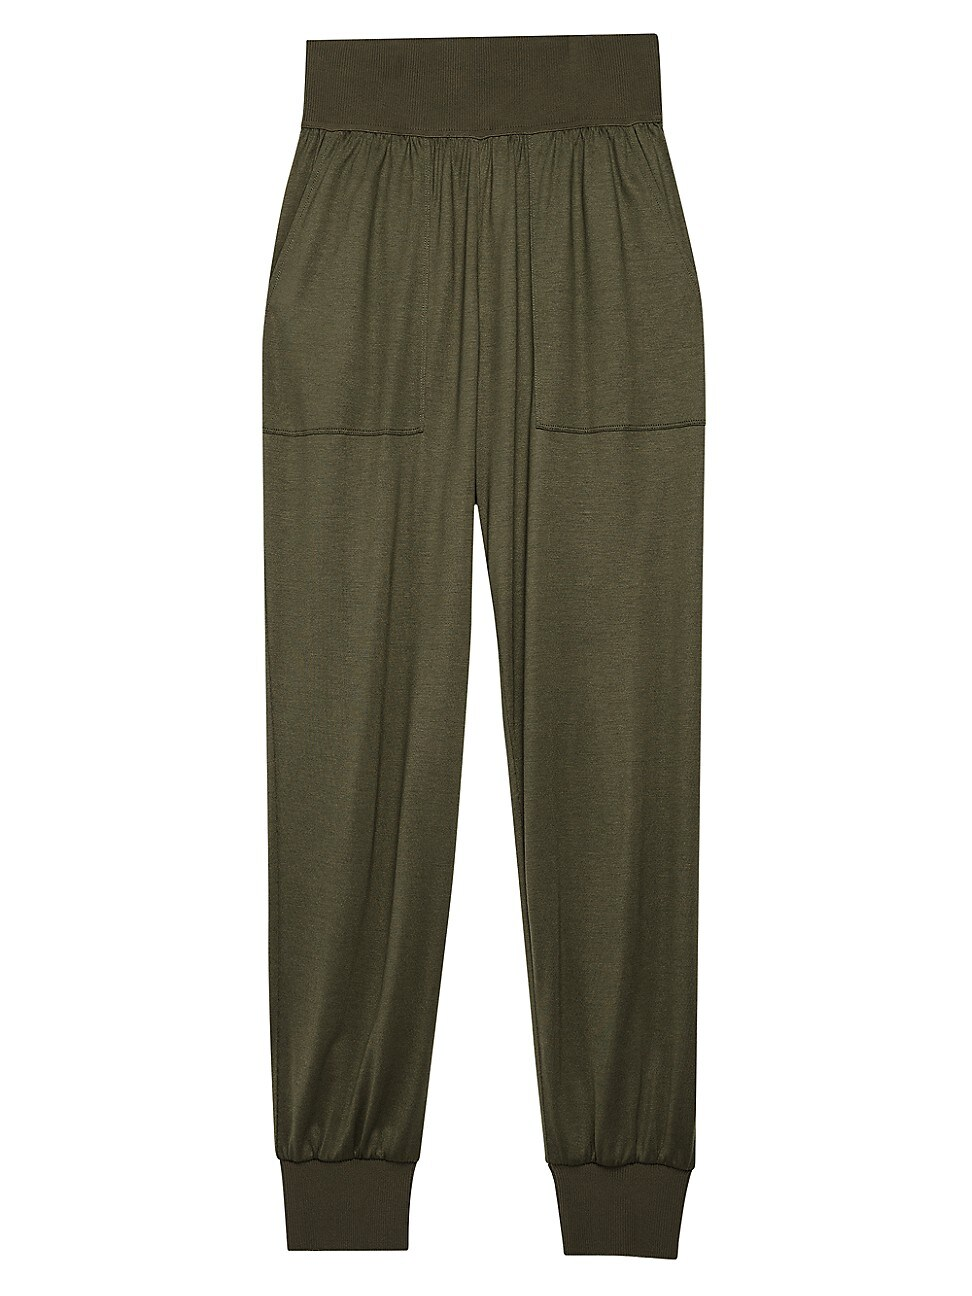 Theory Pants WOMEN'S RIBBED KNIT JOGGERS